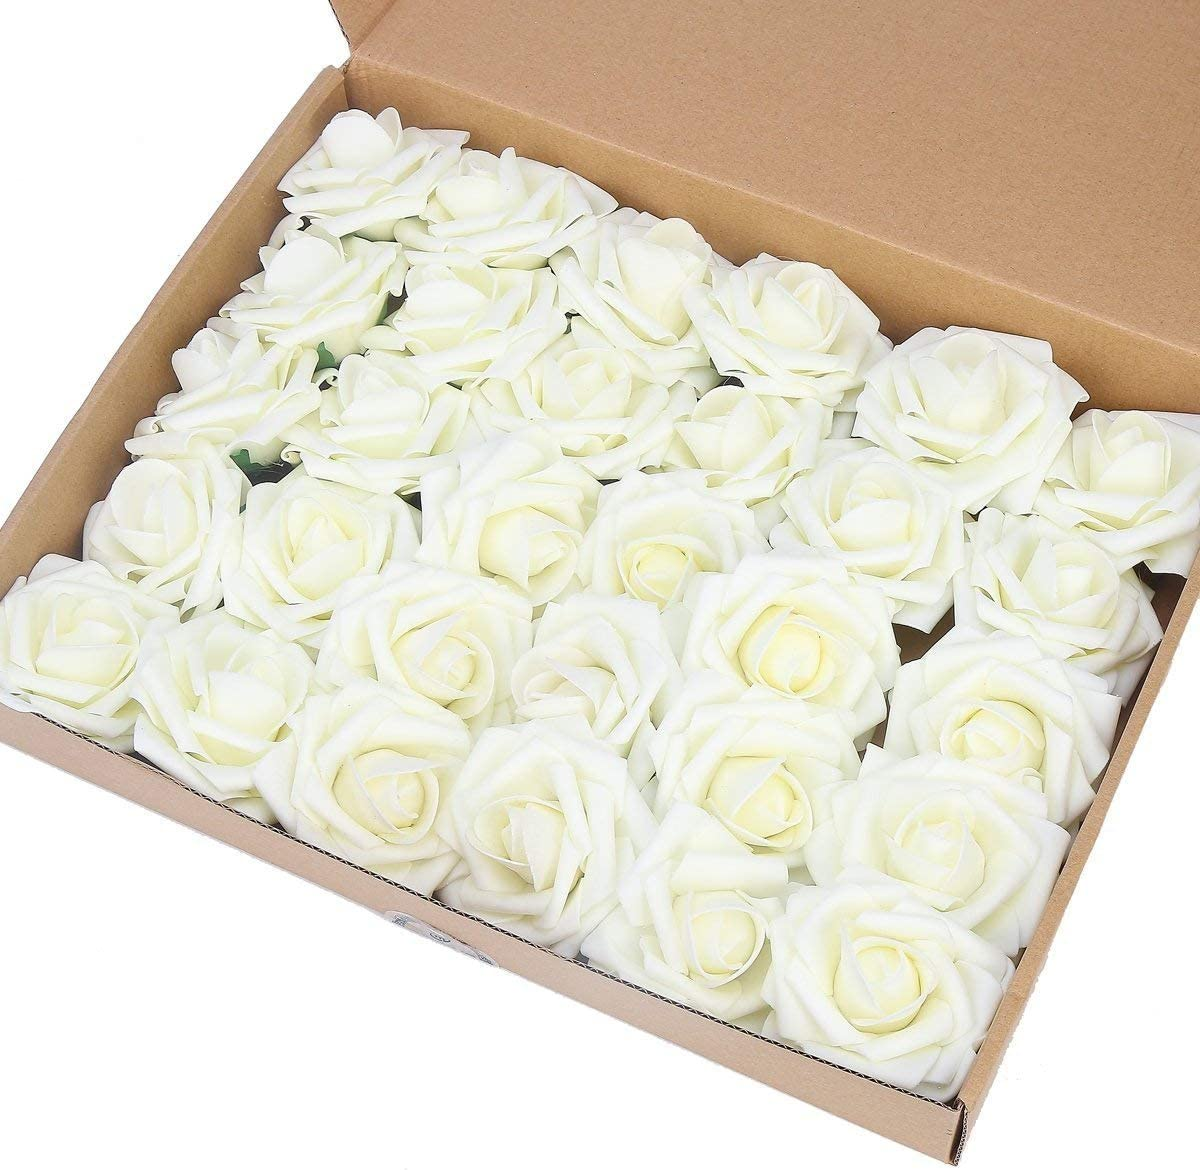 MACTING Artificial Flower Rose, 60pcs Real Touch Artificial Roses for DIY Bouquets Wedding Party Baby Shower Home Decor (60pcs Ivory)